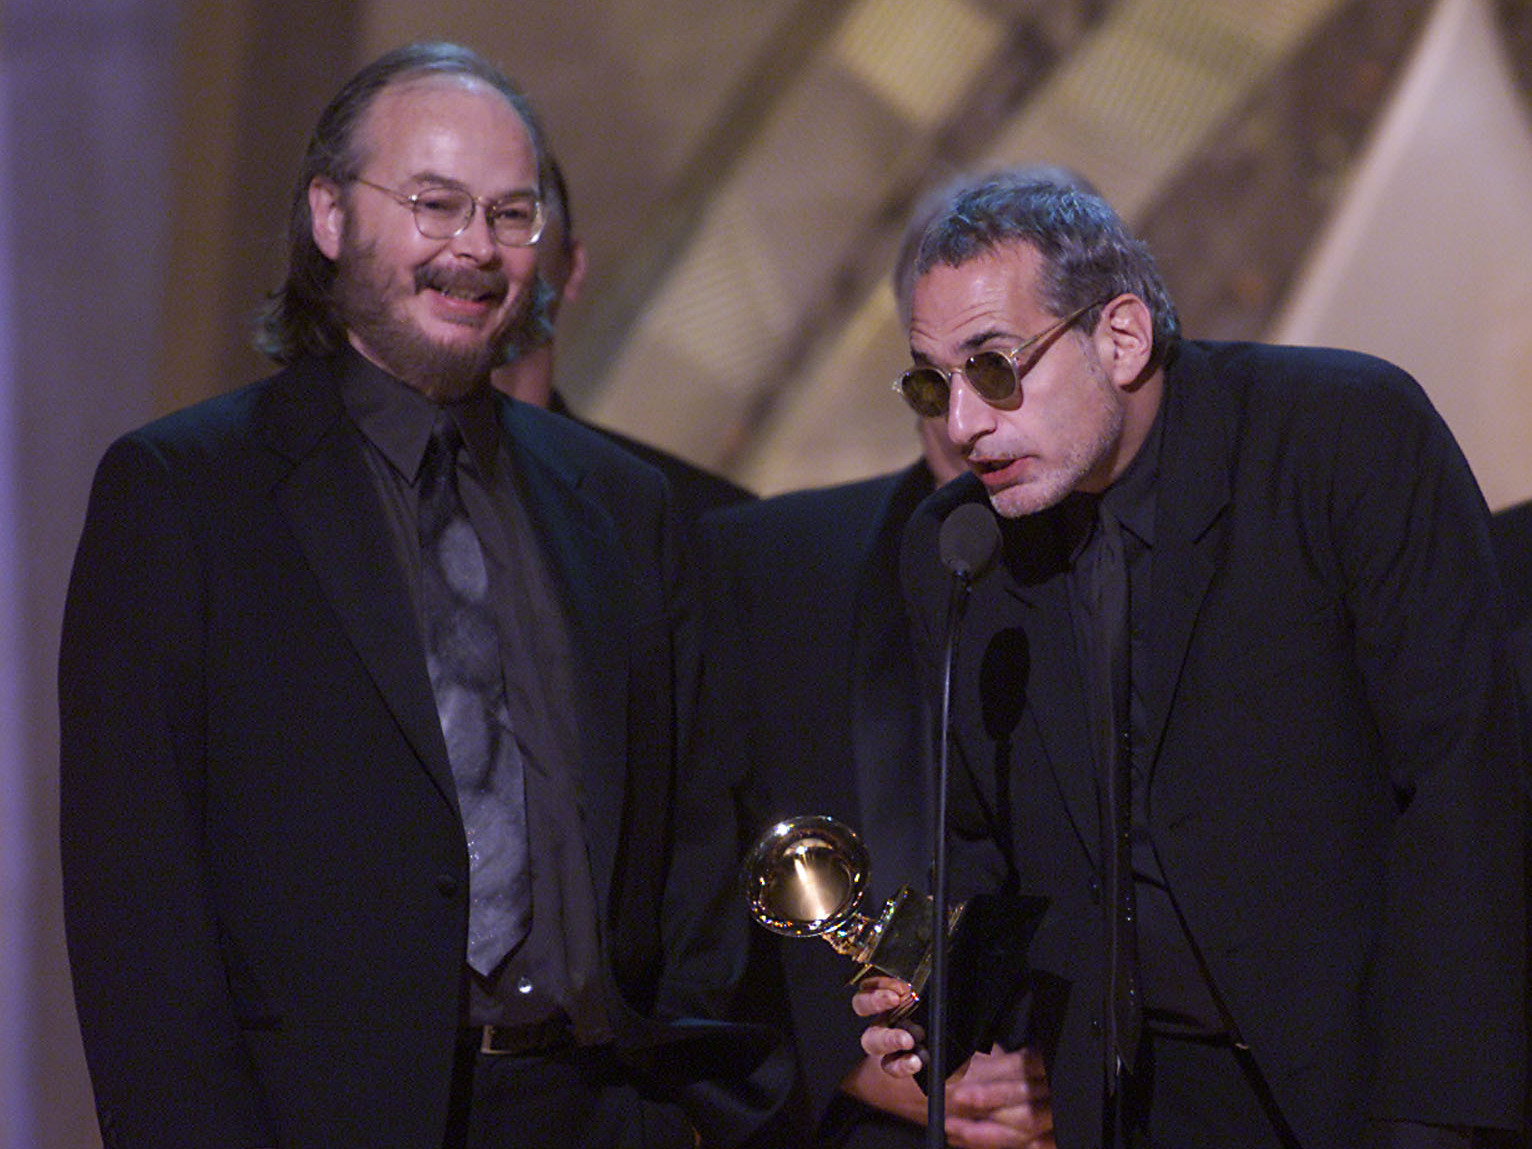 Walter Becker (left) and Donald Fagen of Steely Dan accept the award for Album of the Year at The 43rd Annual Grammy Awards.